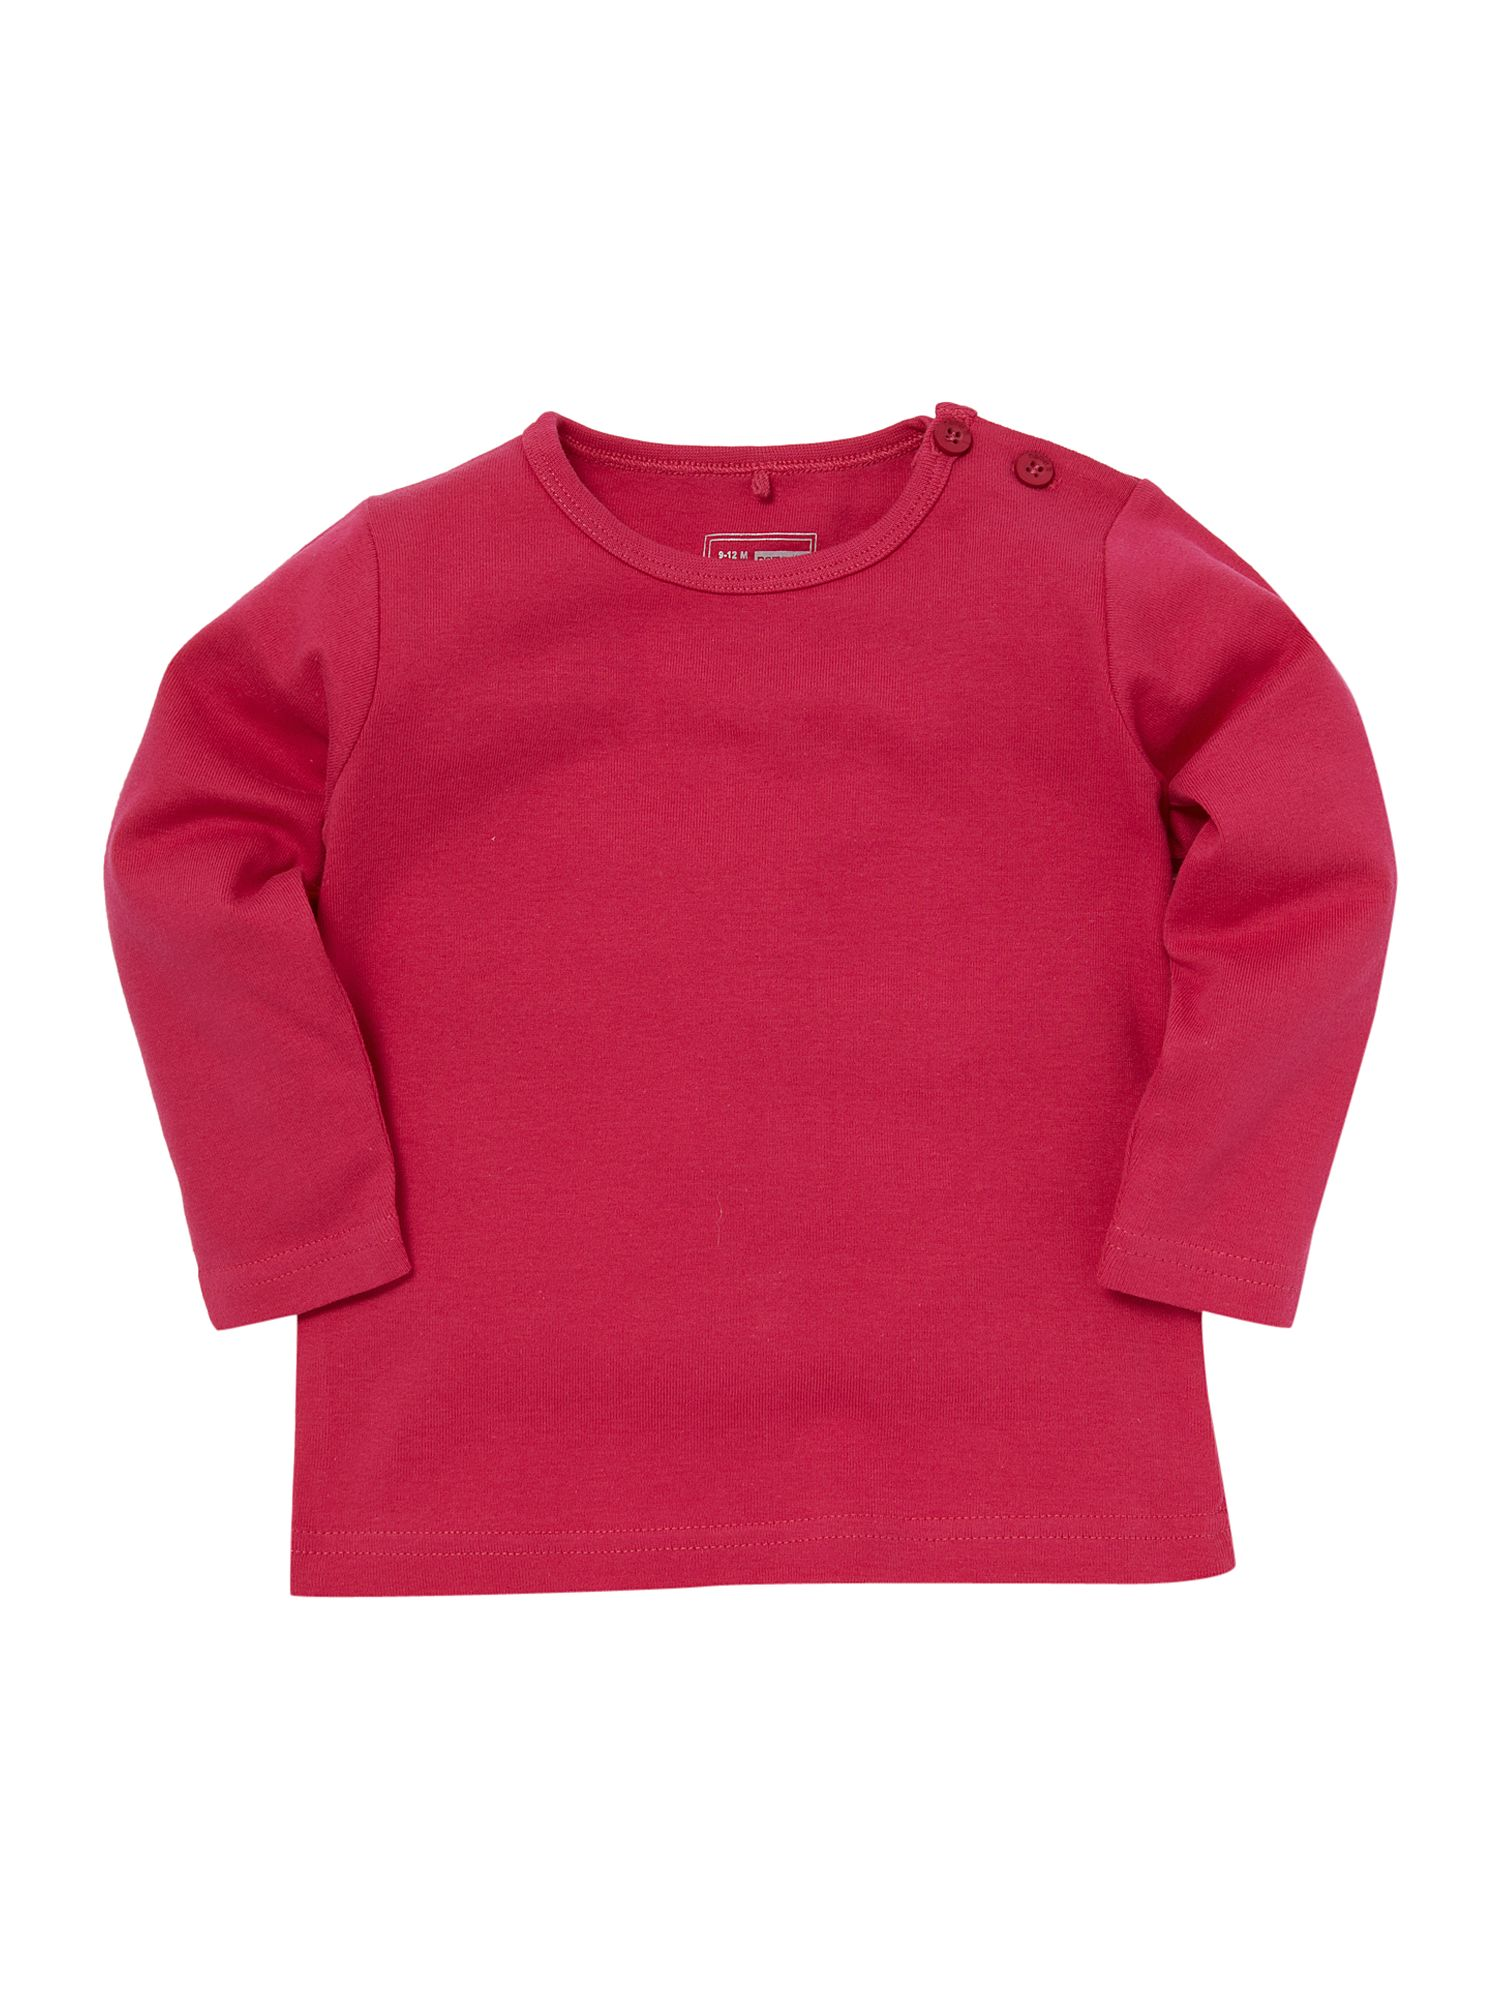 Name It Long-sleeved plain T-shirt Fuchsia product image